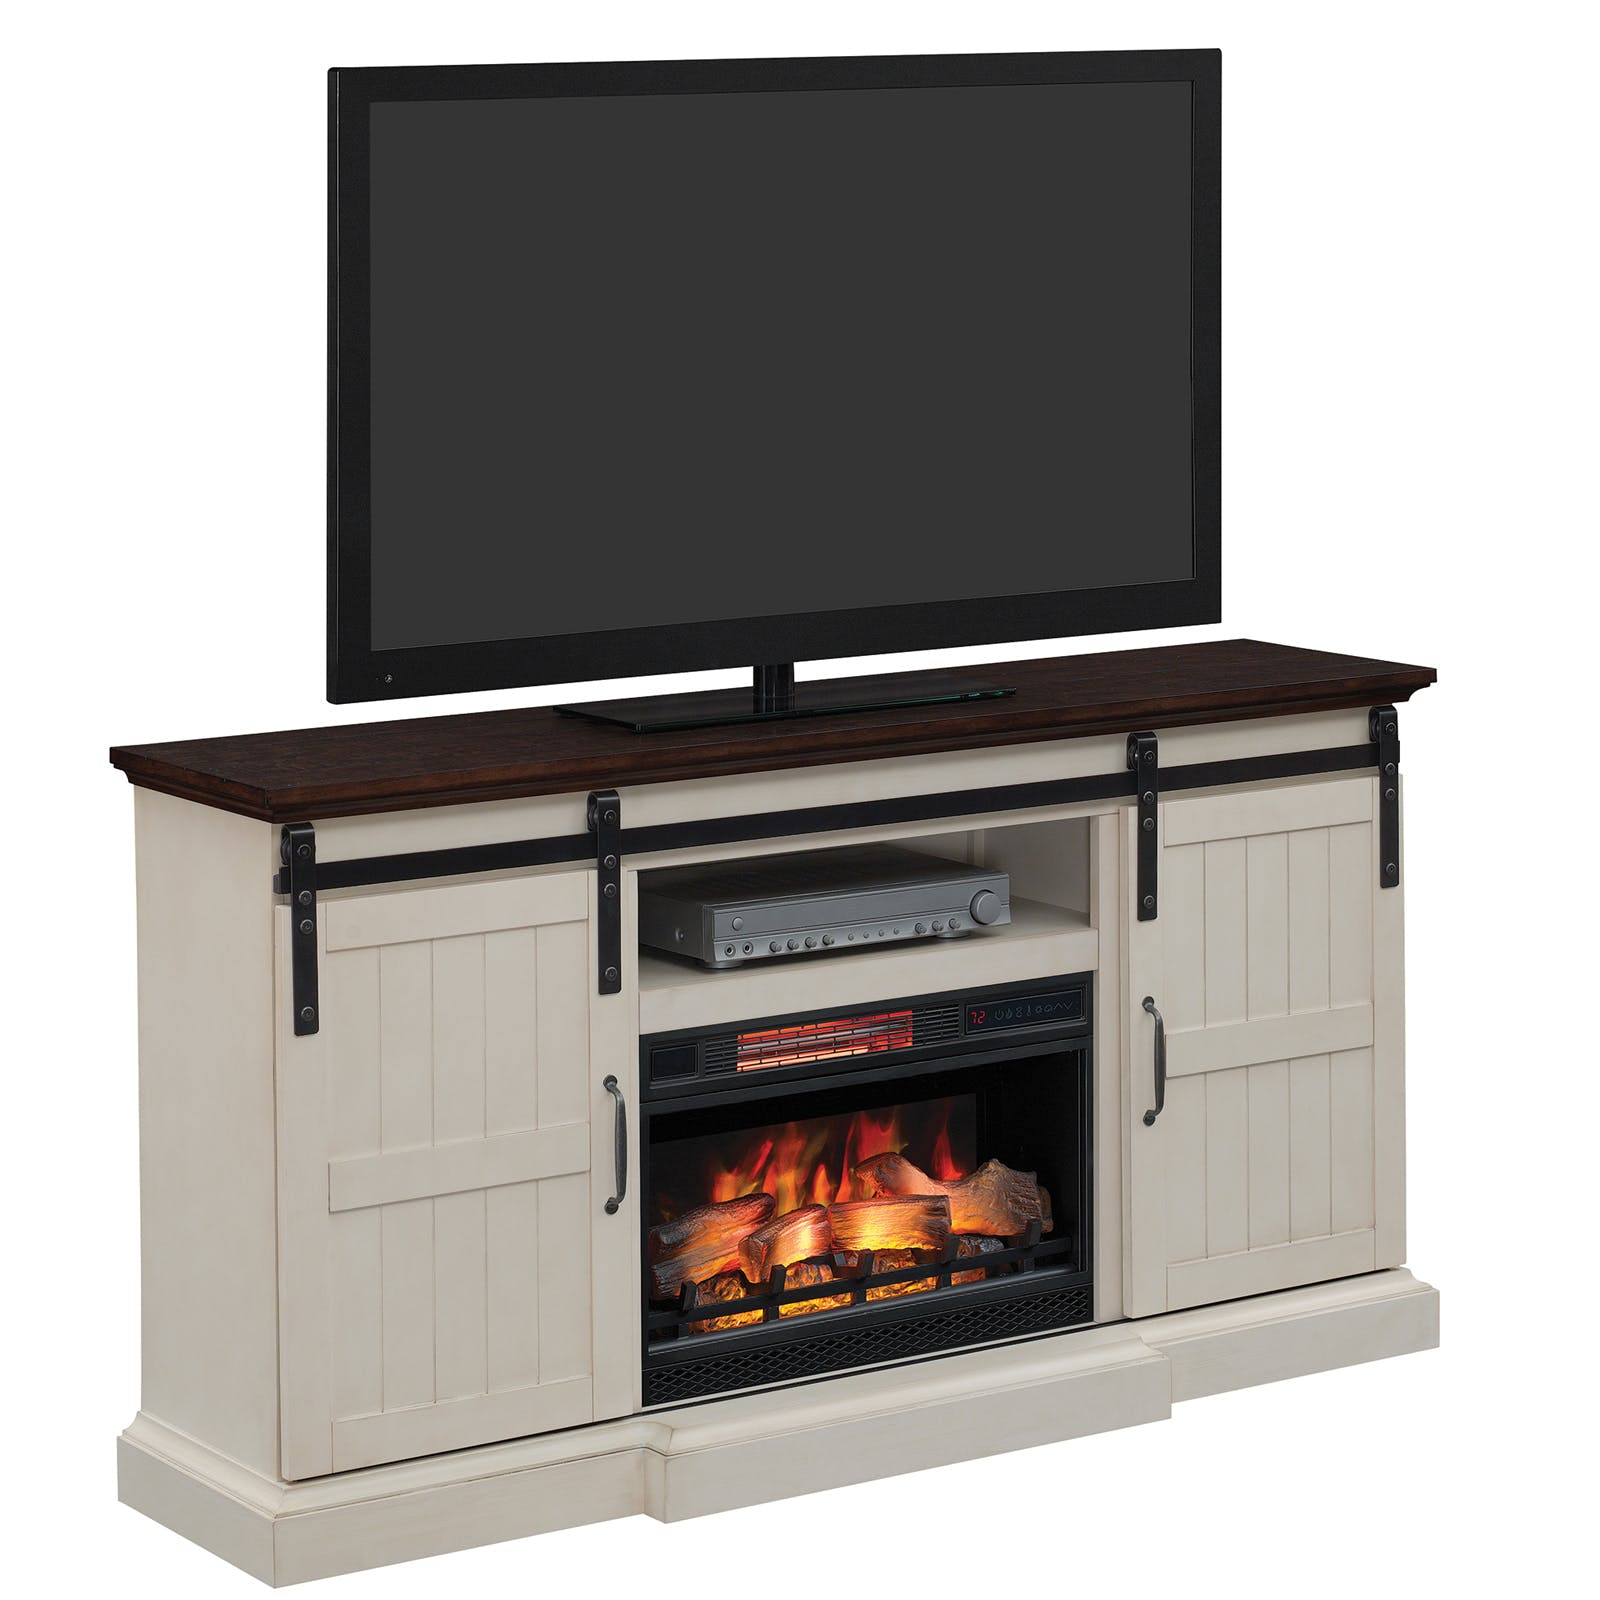 Weathered White Tv Stand With Fireplace Insert Furniture